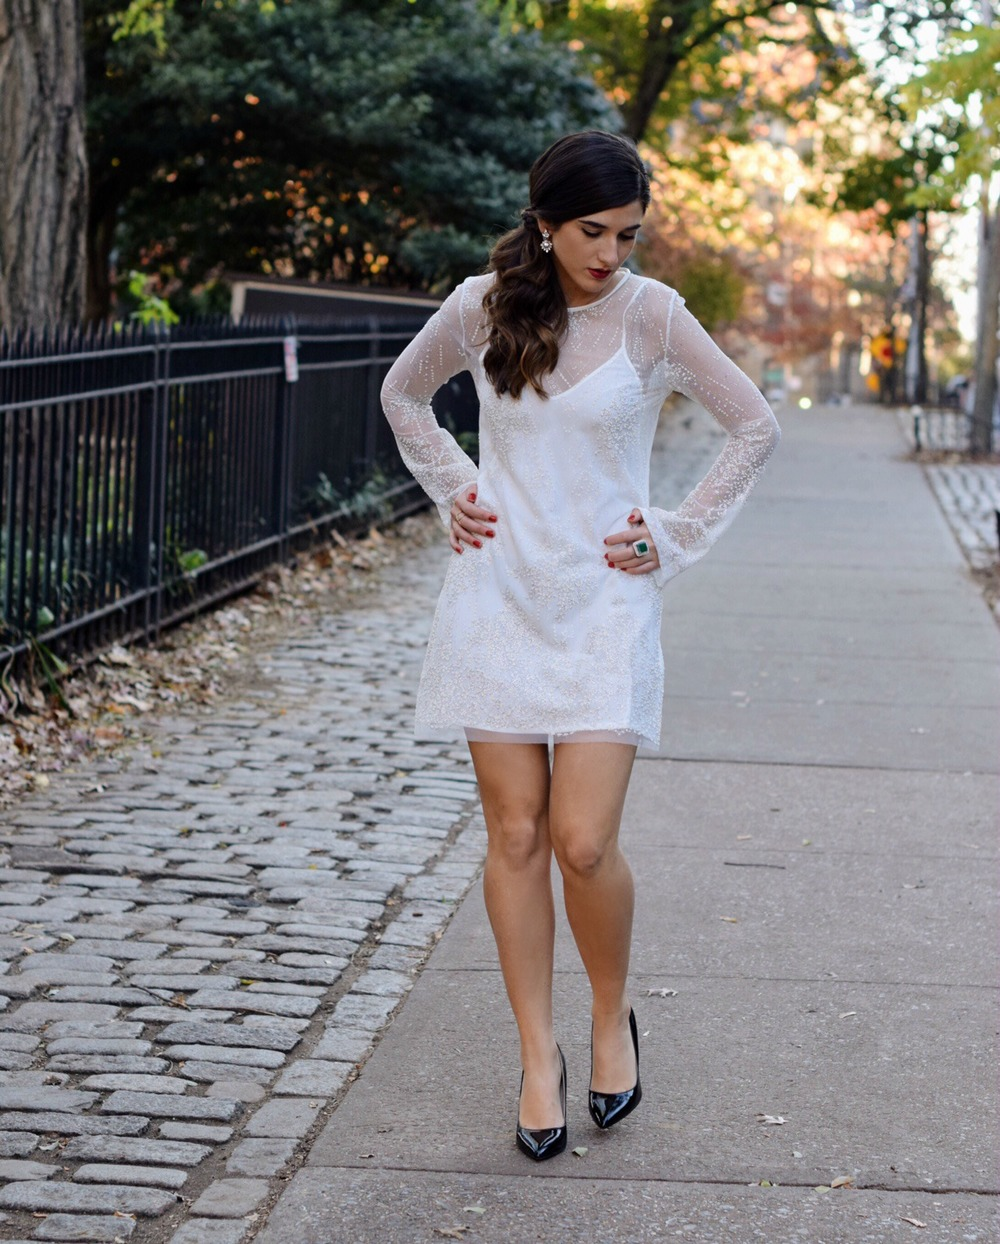 Holiday Look White Glitter Dress Elahn Jewels Louboutins & Love Fashion Blog Esther Santer NYC Street Style Blogger Diamond Rings Happiness Boutique Earrings Emerald Beautiful Fine Jewelry Girl Women Model Outfit Inspo OOTD Shoes Black Heels Shopping.jpg